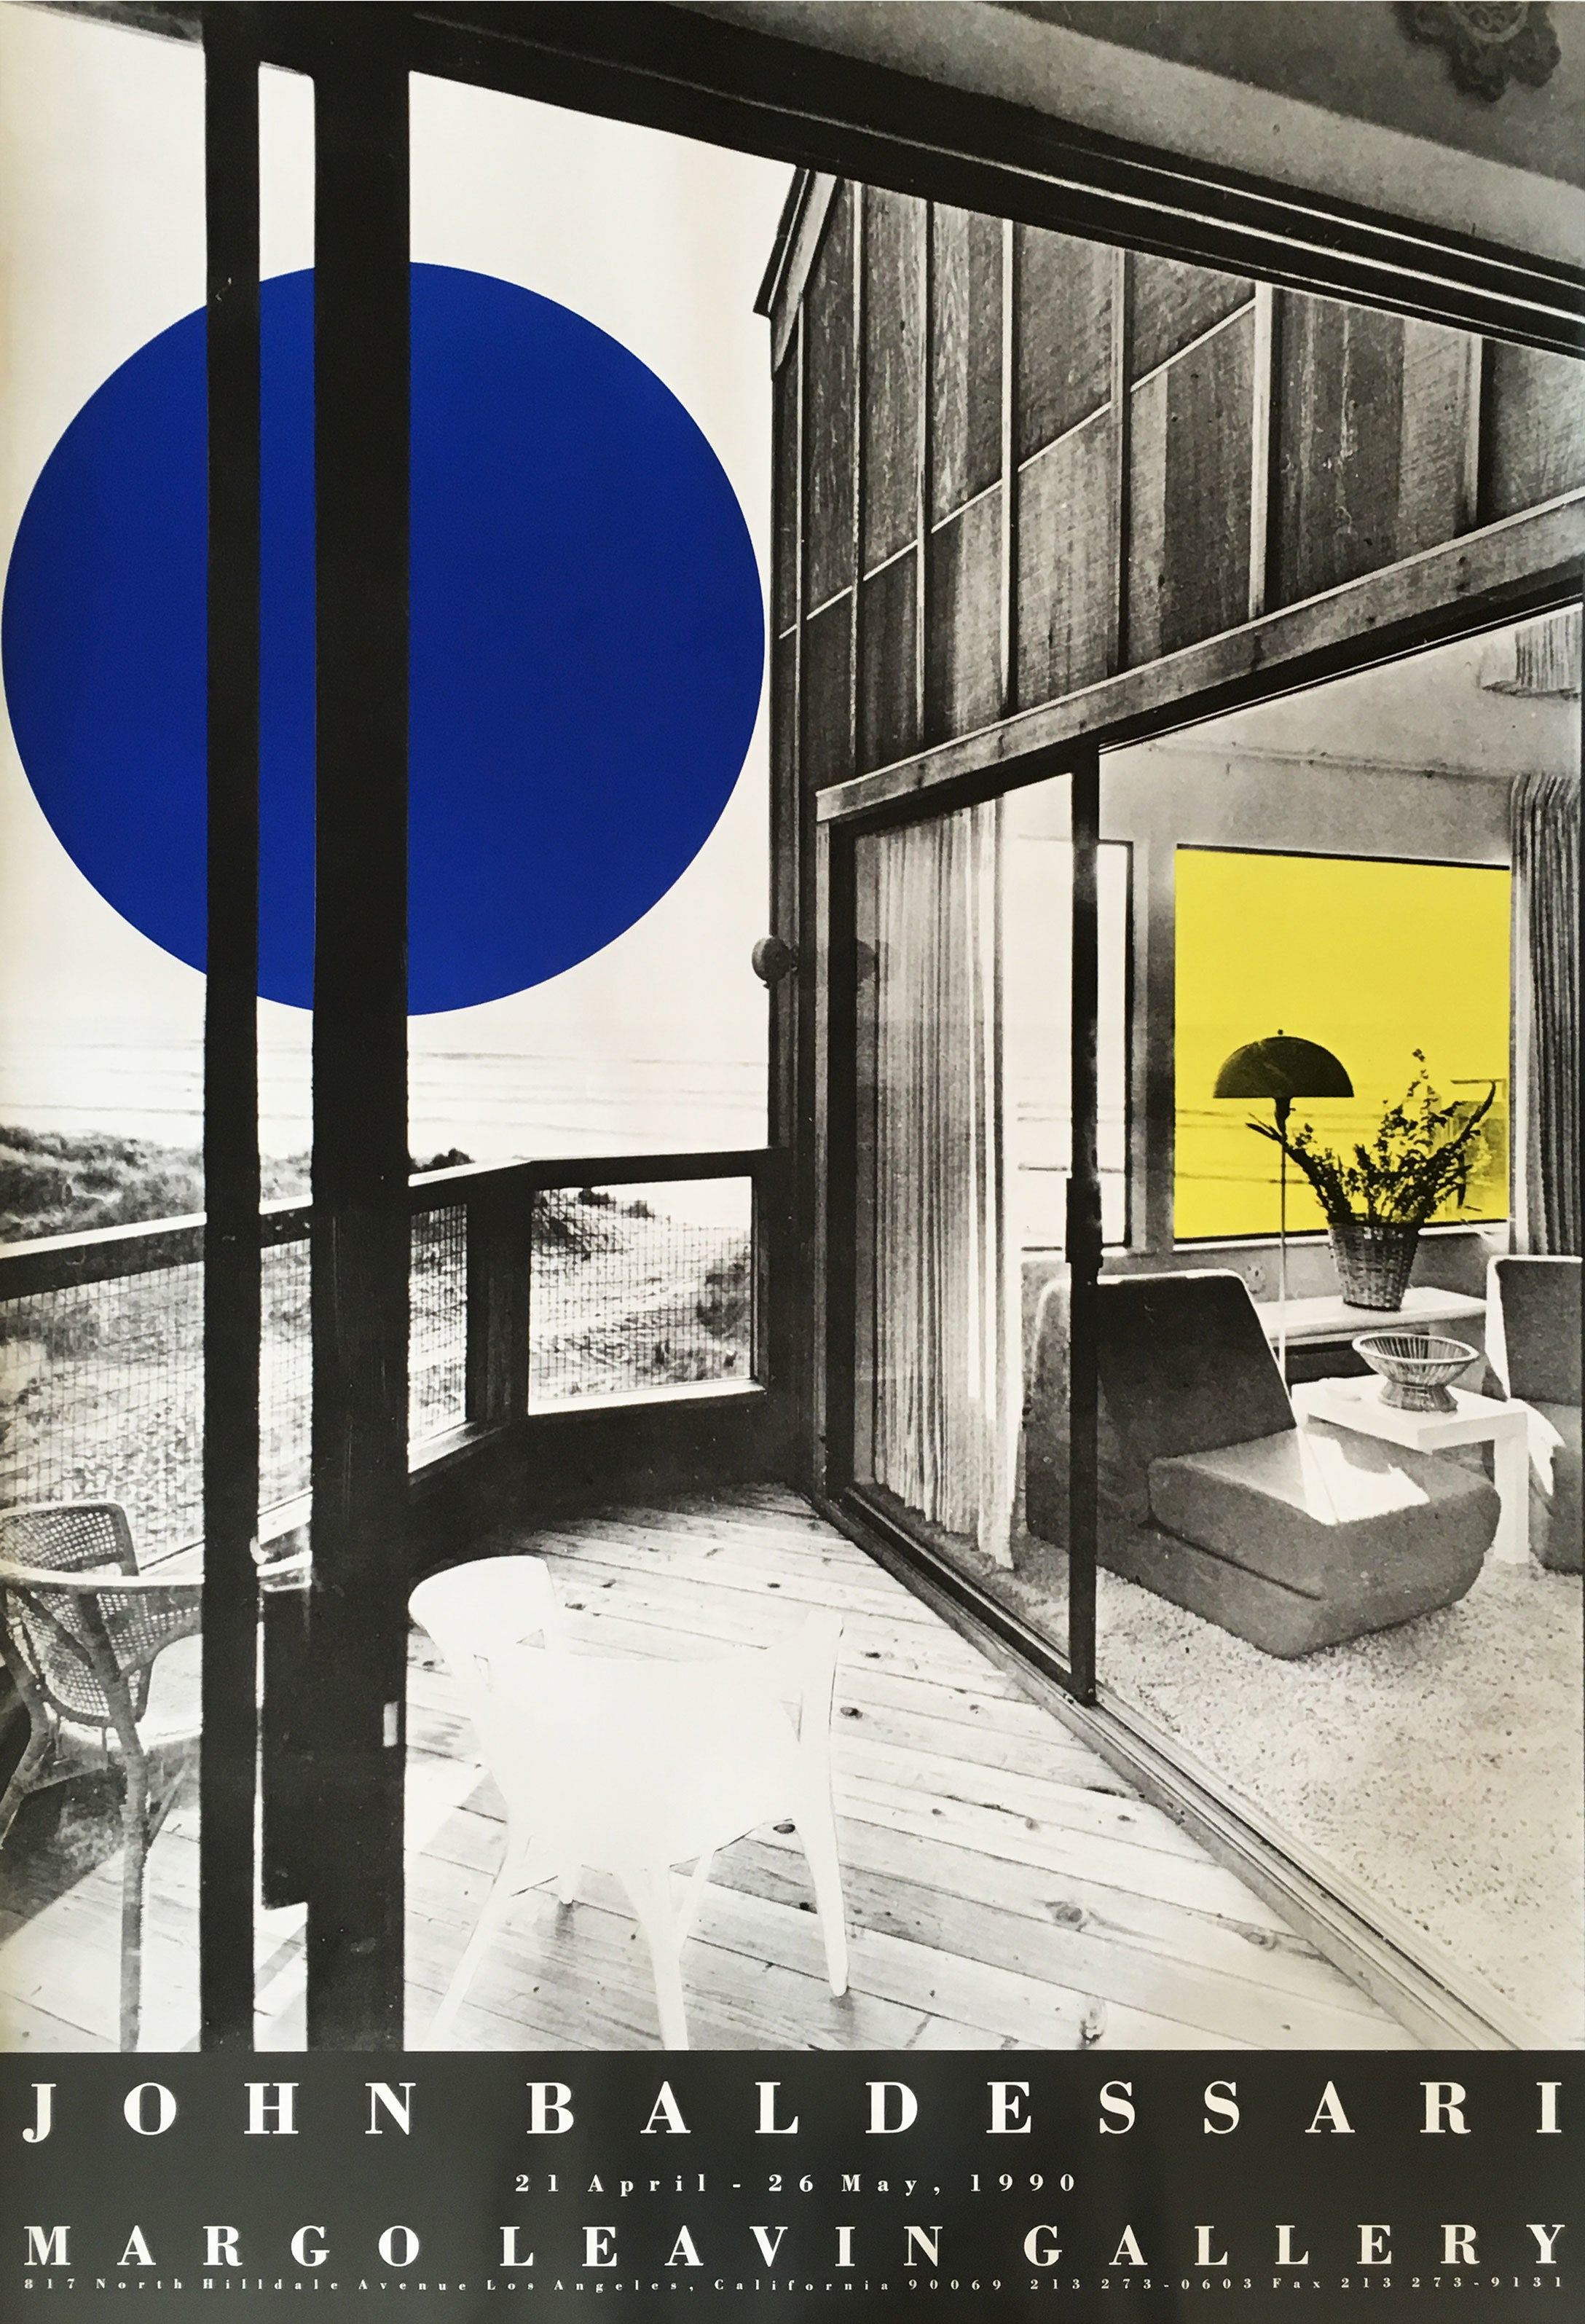 Original John Baldessari Exhibition Poster at Margo Leavin Gallery in 1990